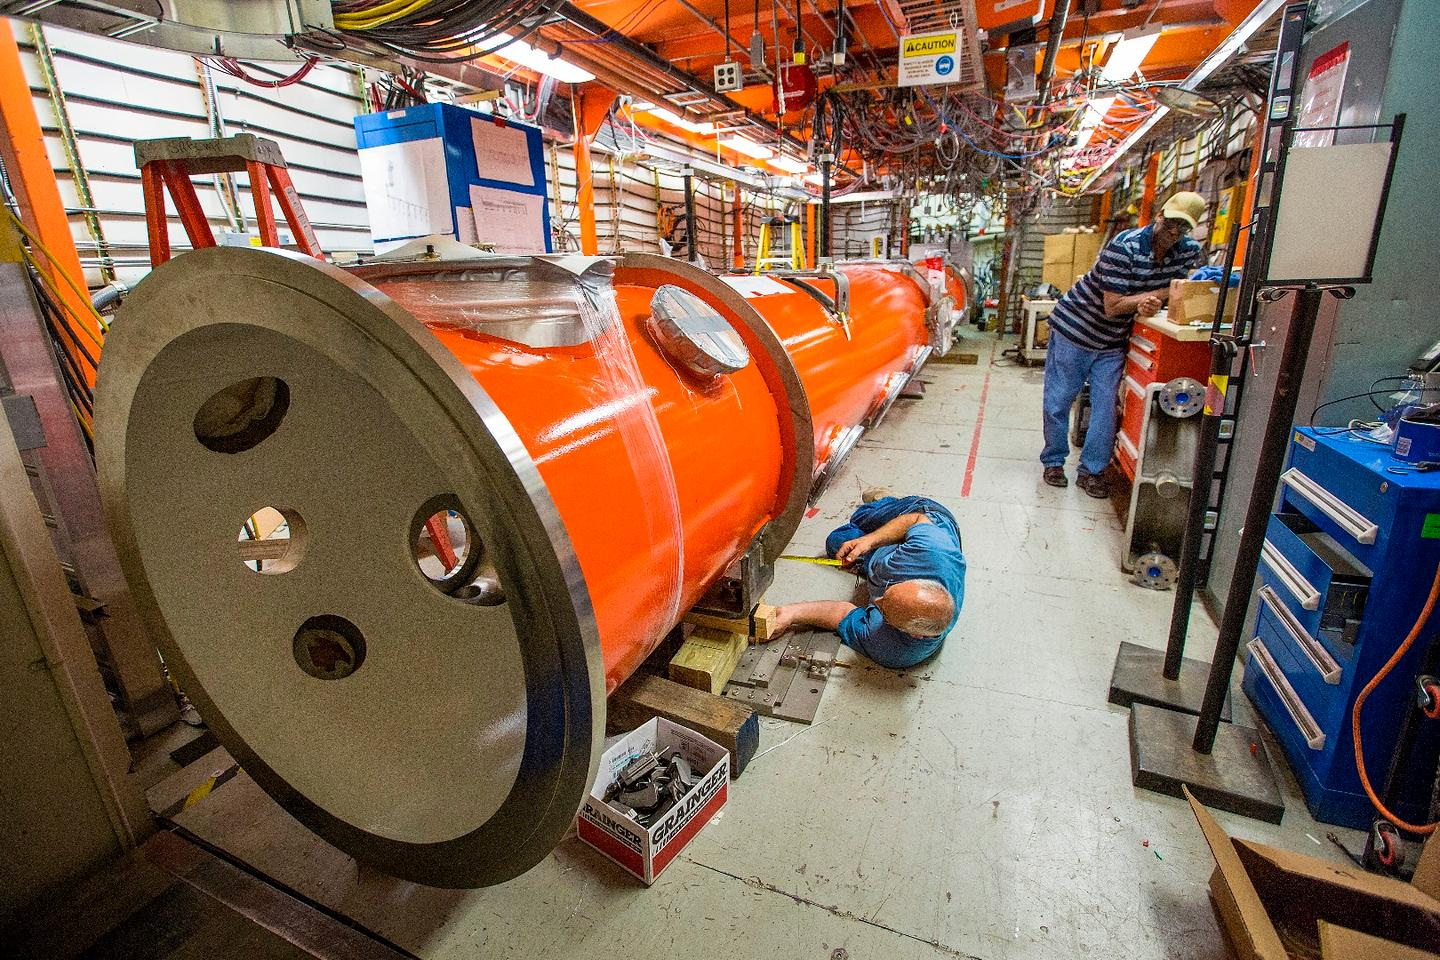 Each cryomodule will undergo rigoroustesting before it's shipped out to the SLAC National Accelerator Laboratory